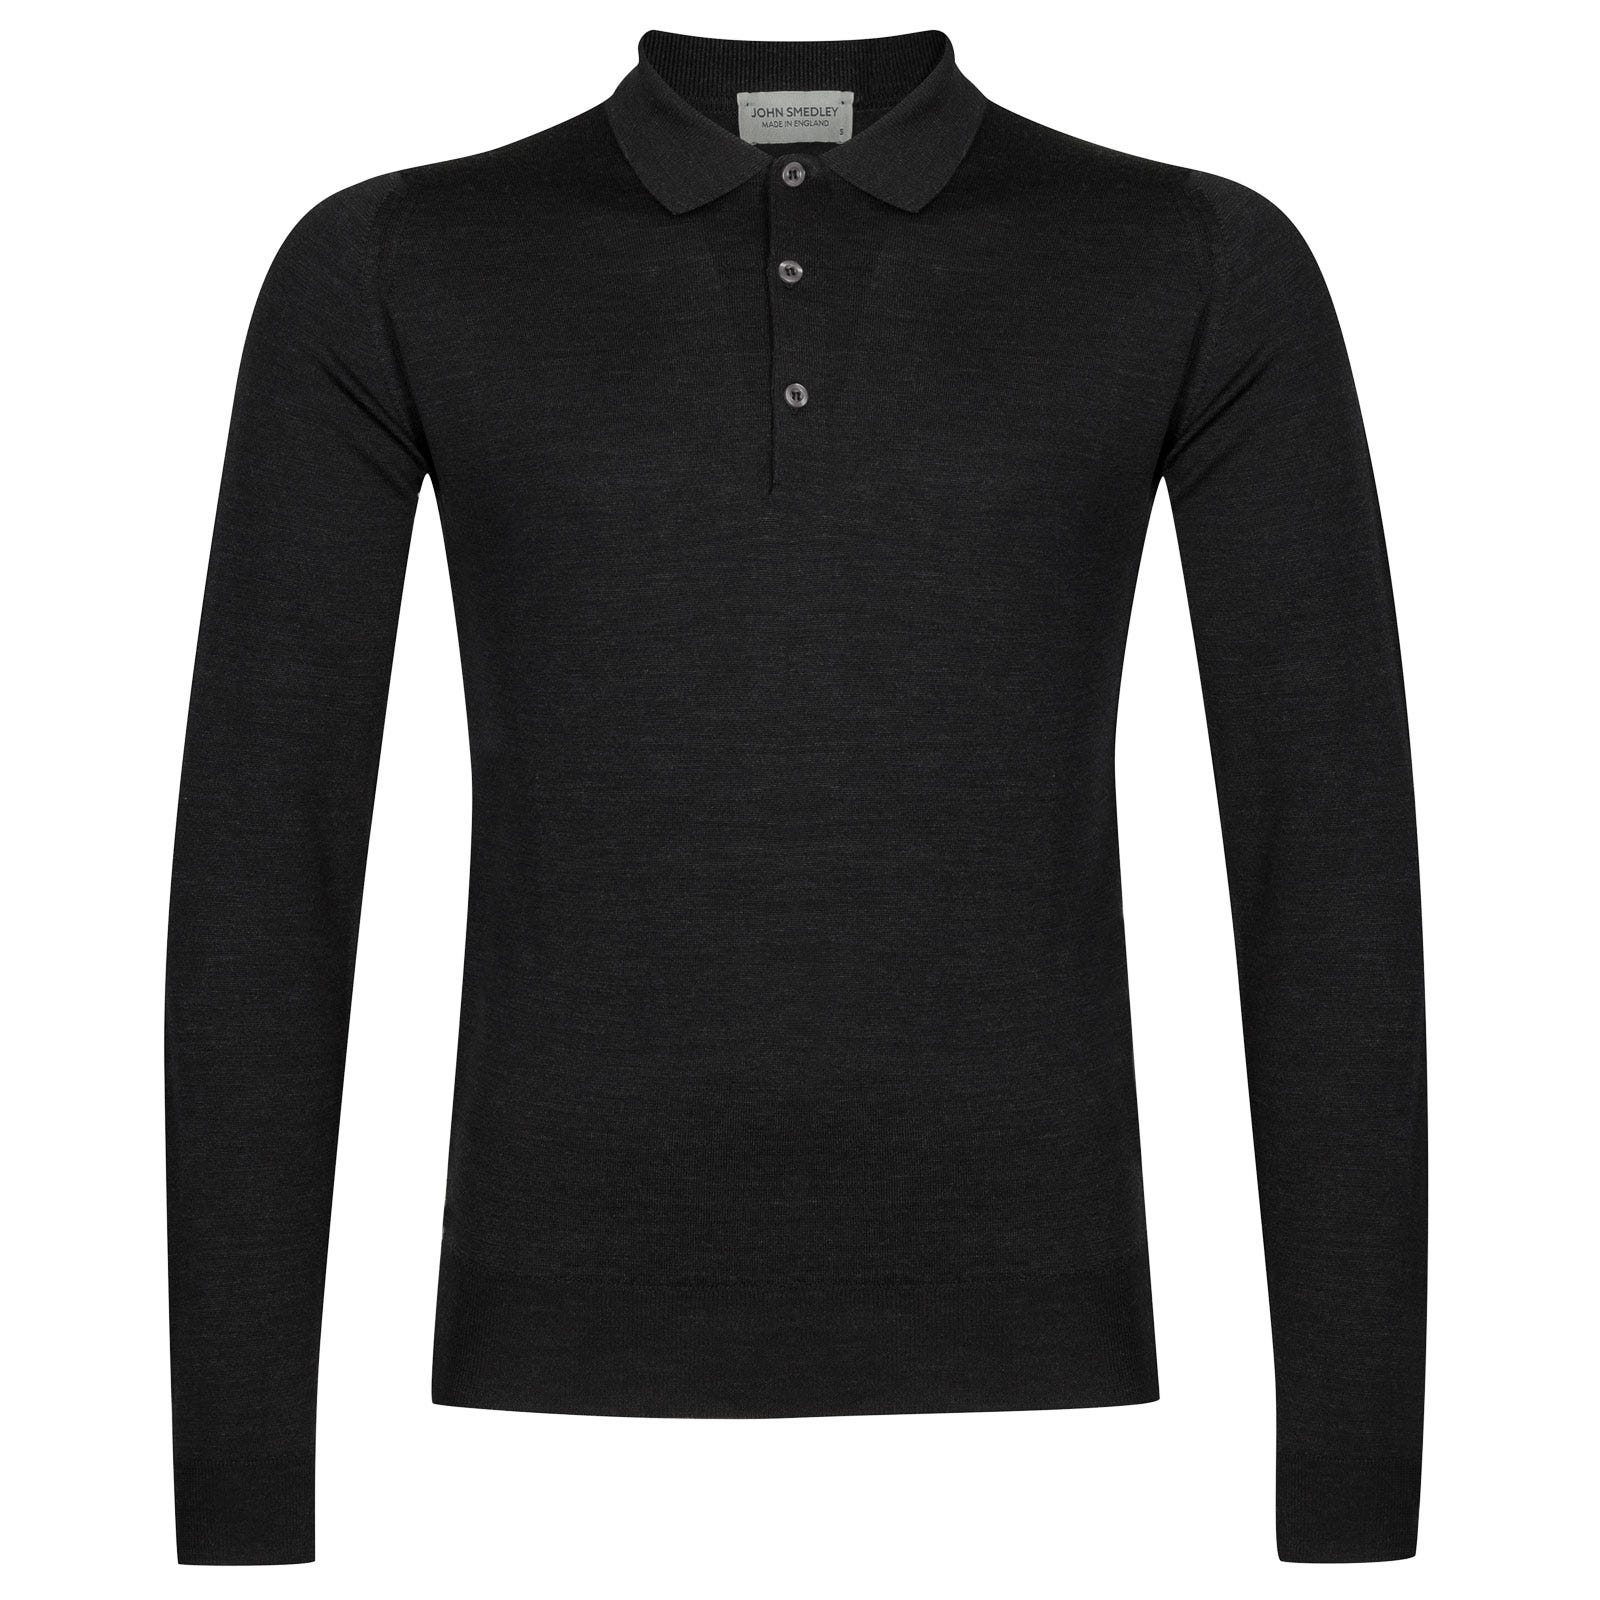 John Smedley belper Merino Wool Shirt in Hepburn Smoke-M